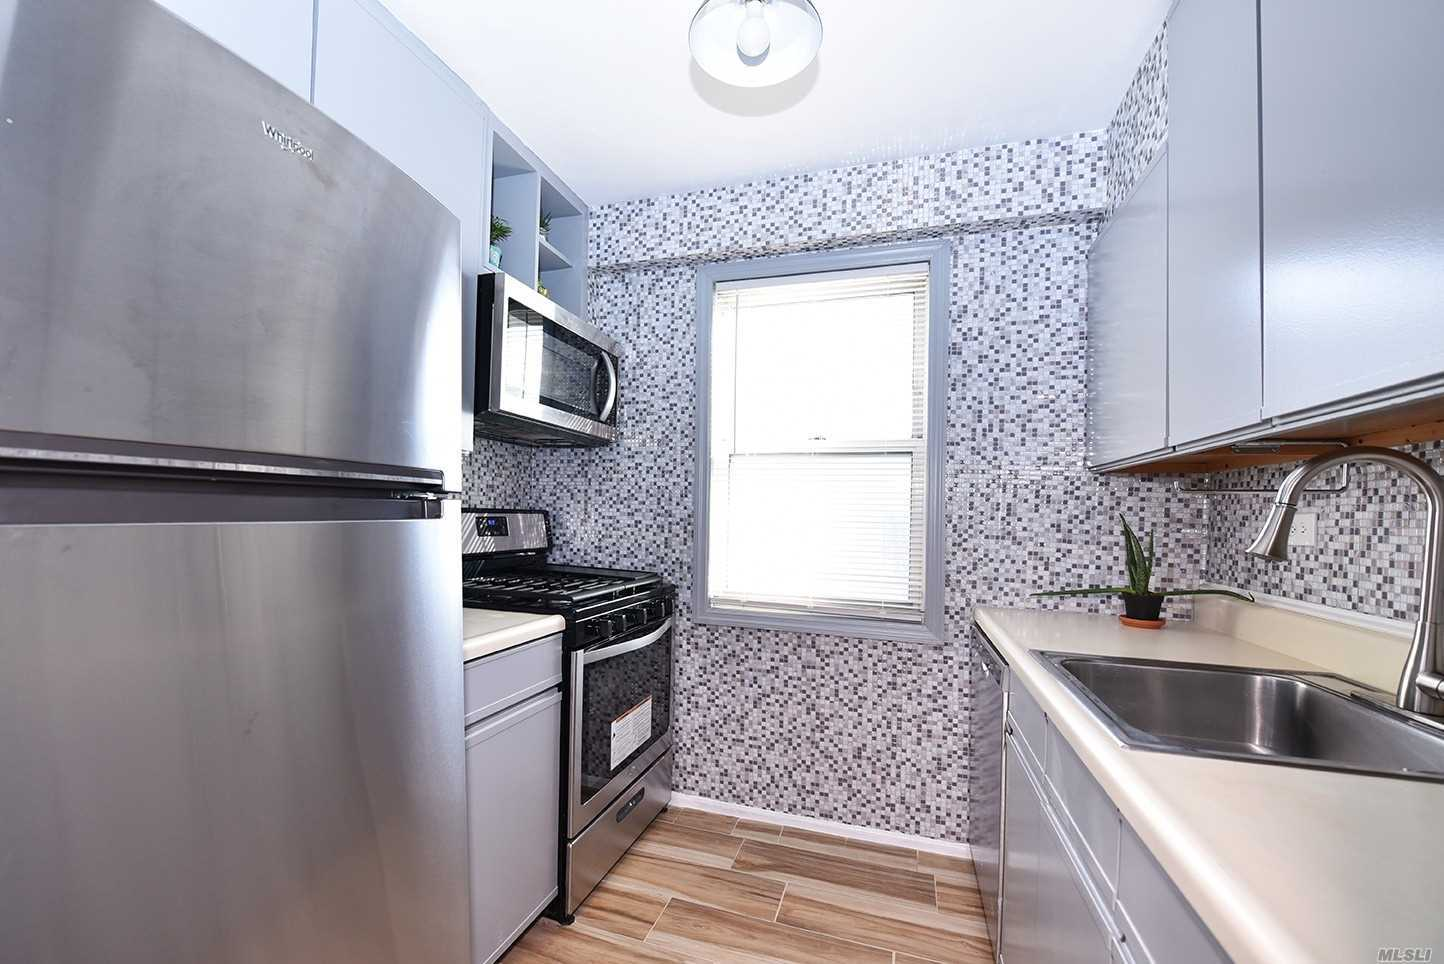 Welcoming And Radiant, This Spacious 1 Bedroom 1 Bath Corner Unit In The Coronet Is One-Of-A-Kind. This Fully Renovated Apartment Is Complete With Lots Of Natural Lighting, Open Space, And A Large Terrace. The Building Features On-Site Parking, A Doorman, A Full Time Super And Is Located In The Prestigious Jamaica Estates On A Quiet Residential Block, Just Steps Away From Town, Shopping, Buses, And A Few Blocks Away From The 179St Subway Station.